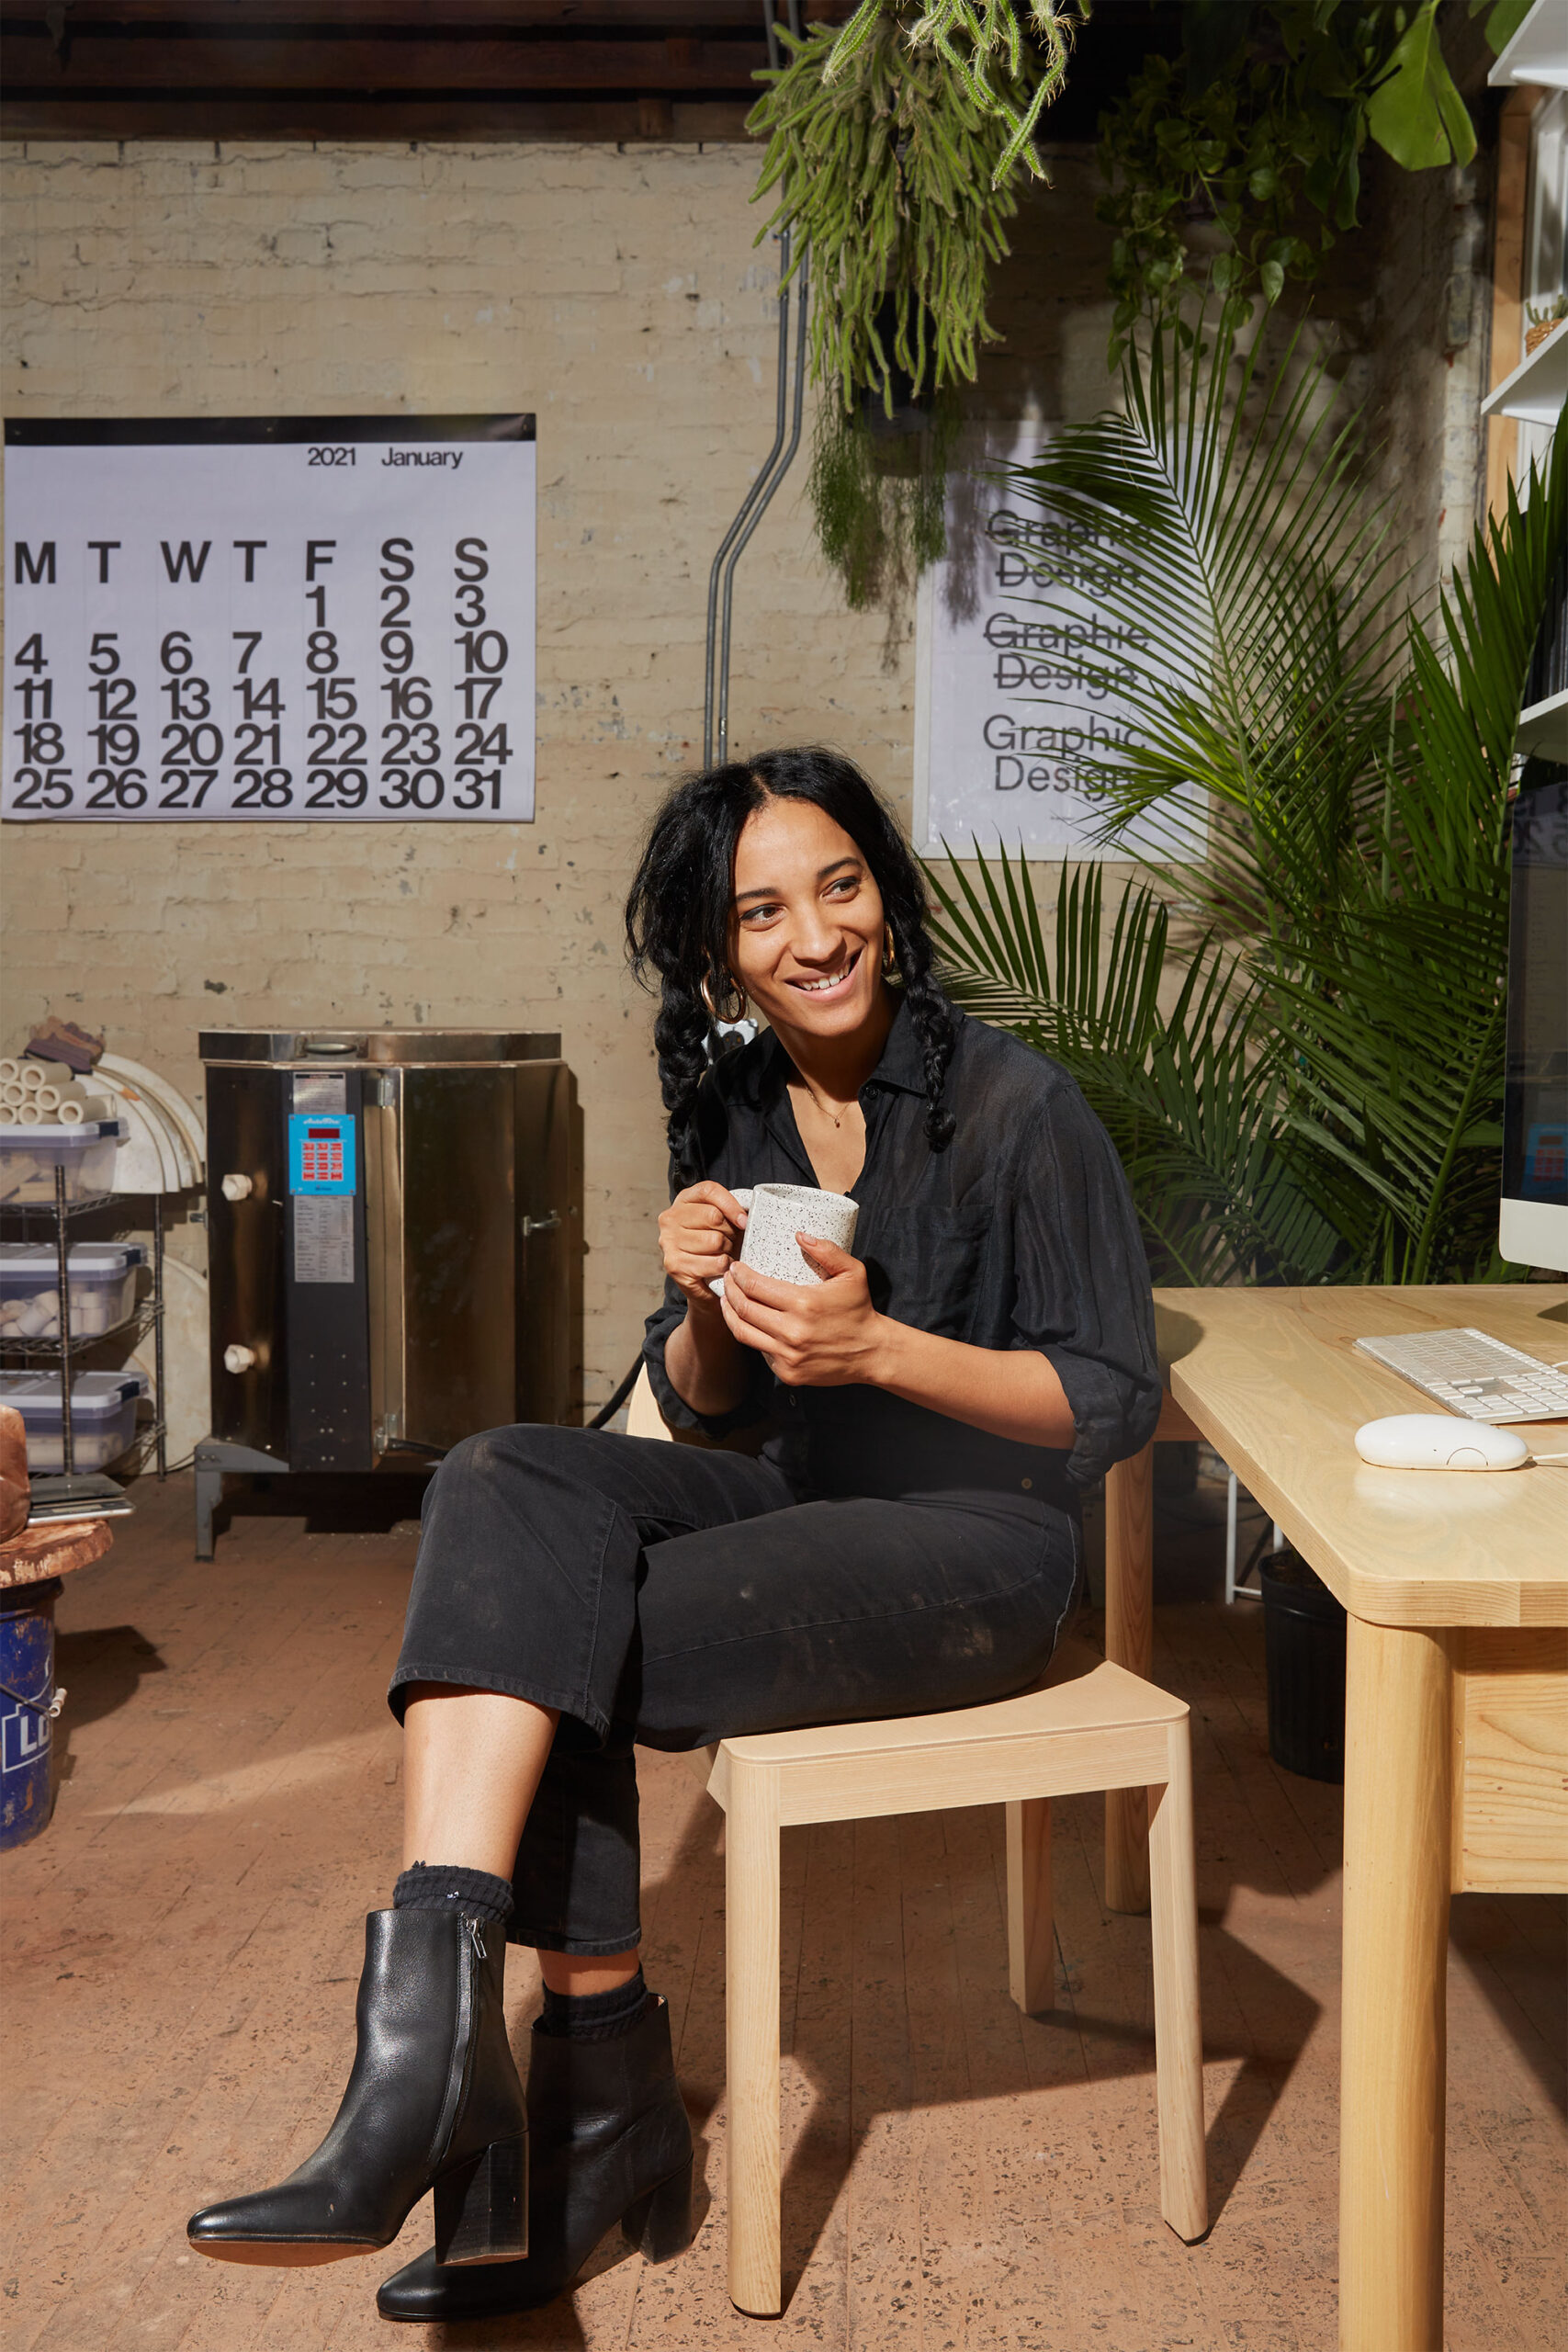 Interview: Lalese Stamps of Lolly Lolly Ceramics Discusses Her Wildly Ambitious 100-Day Project, Brand Activism, and the Need for Vulnerability